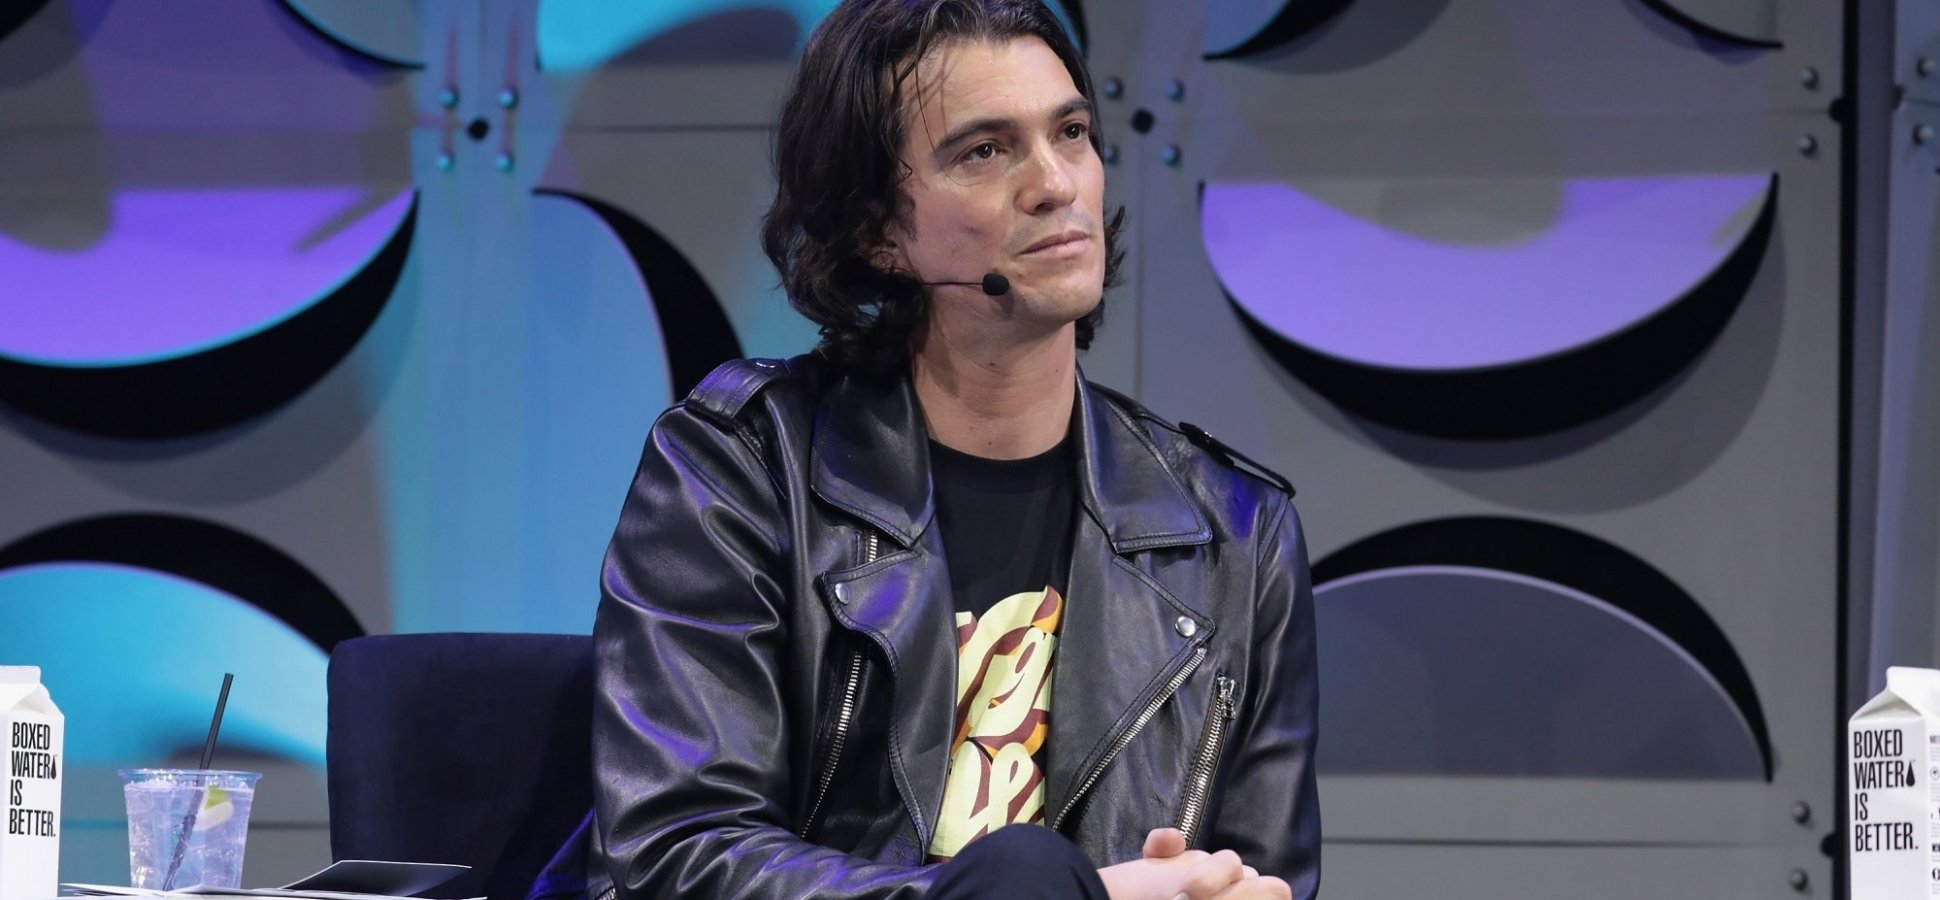 Why Adam Neumann Had To Go and What to Learn From WeWork's CEO Stepping Down